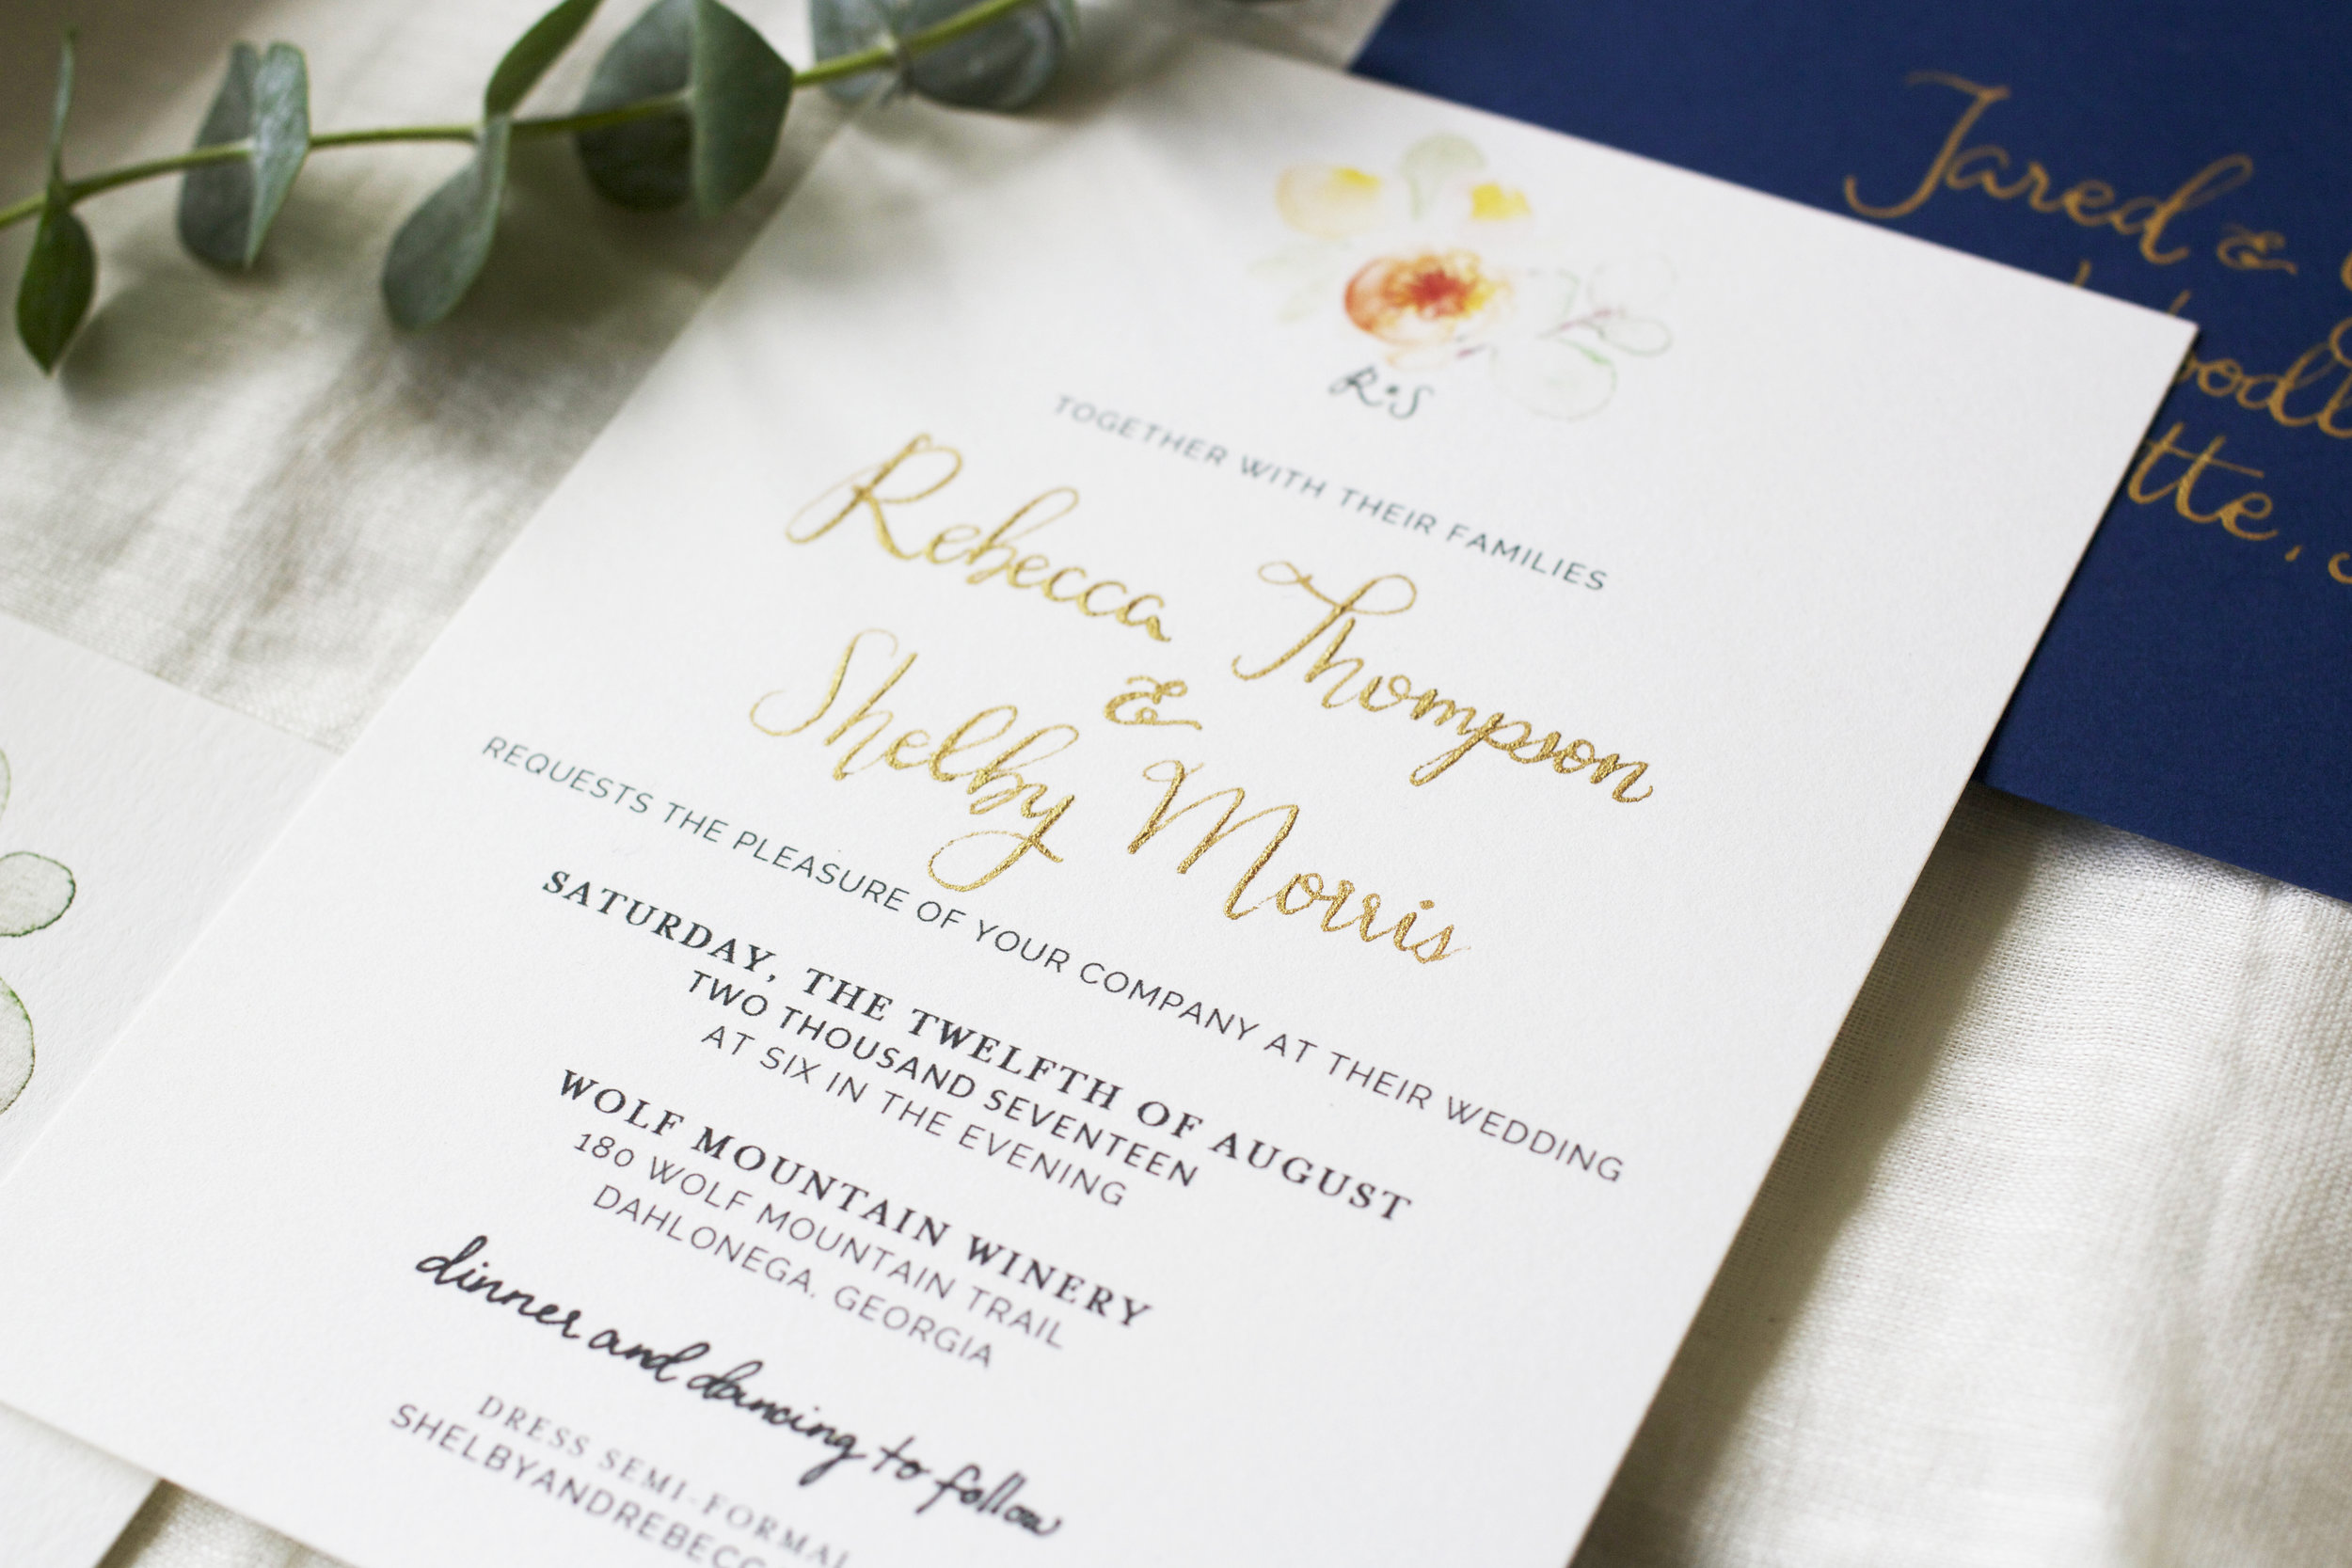 the raised ink effect - Spot pointed-pen calligraphy in copperplate gold. Paper is Crest Lettra, 300 GSM, in bright white.